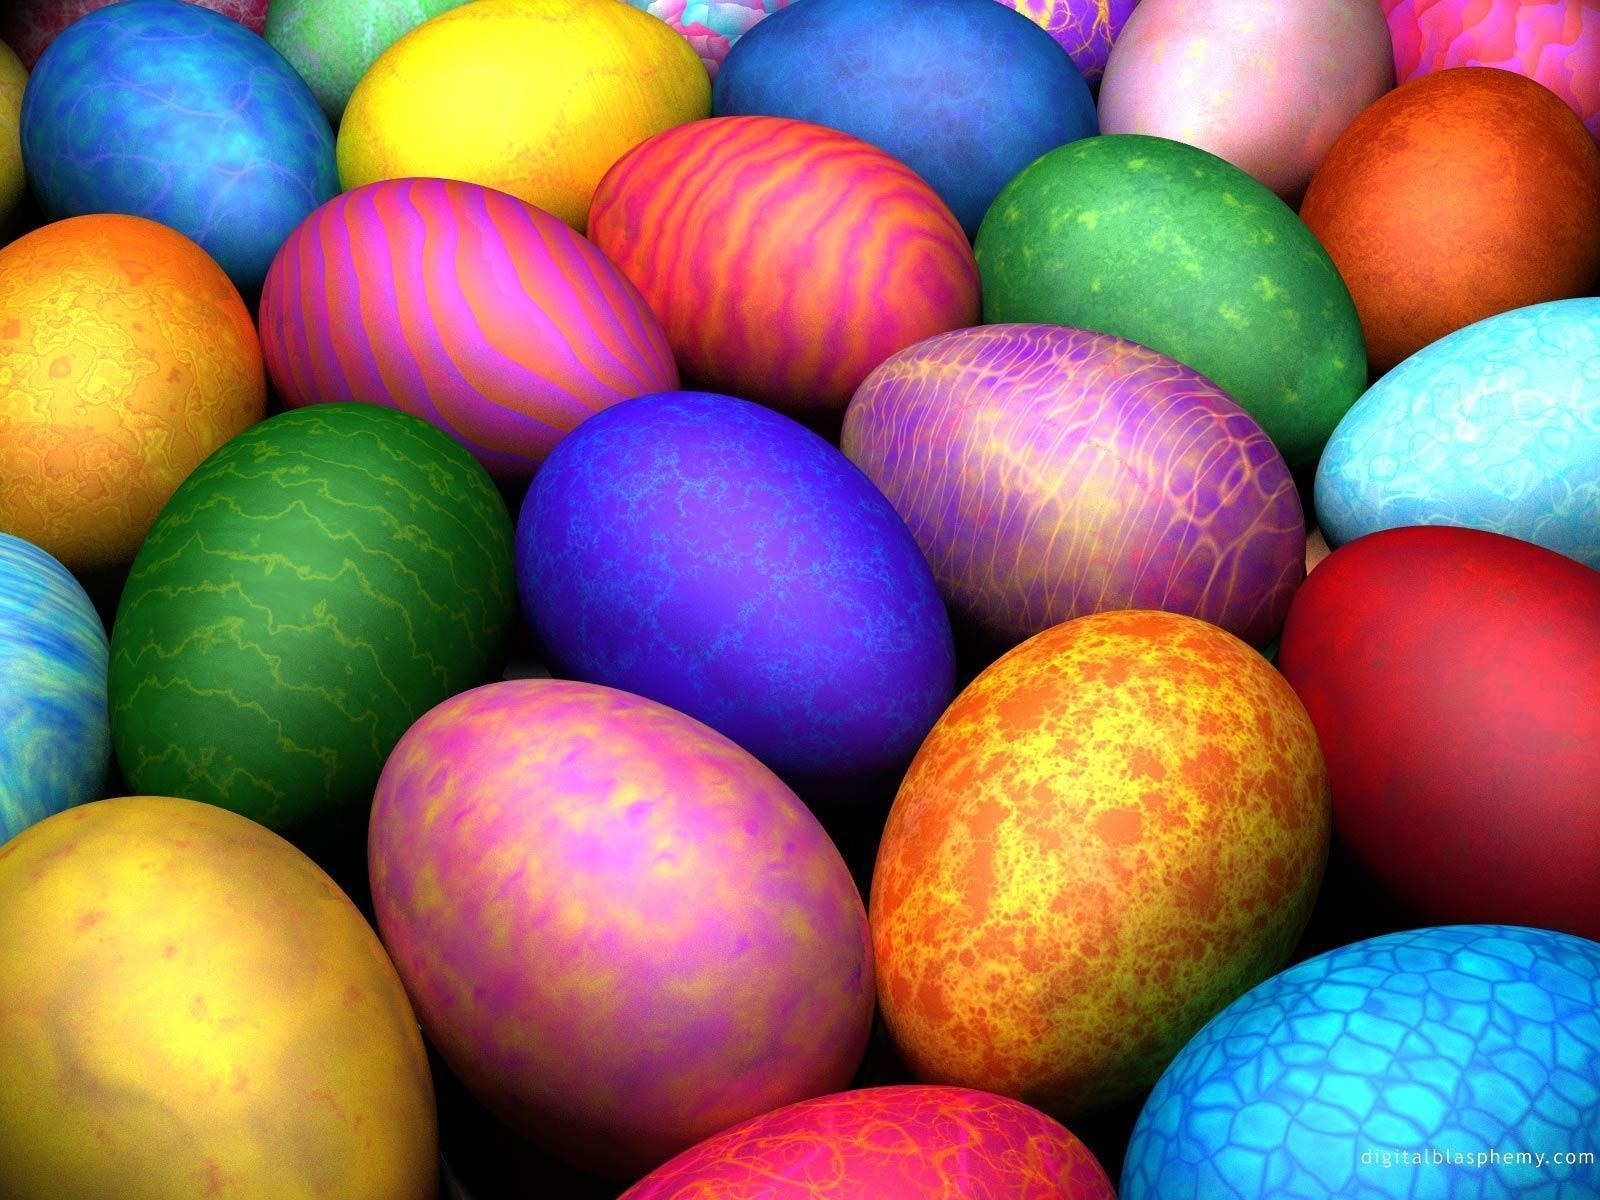 10 Latest Free Easter Desktop Backgrounds FULL HD 1920×1080 For PC Background